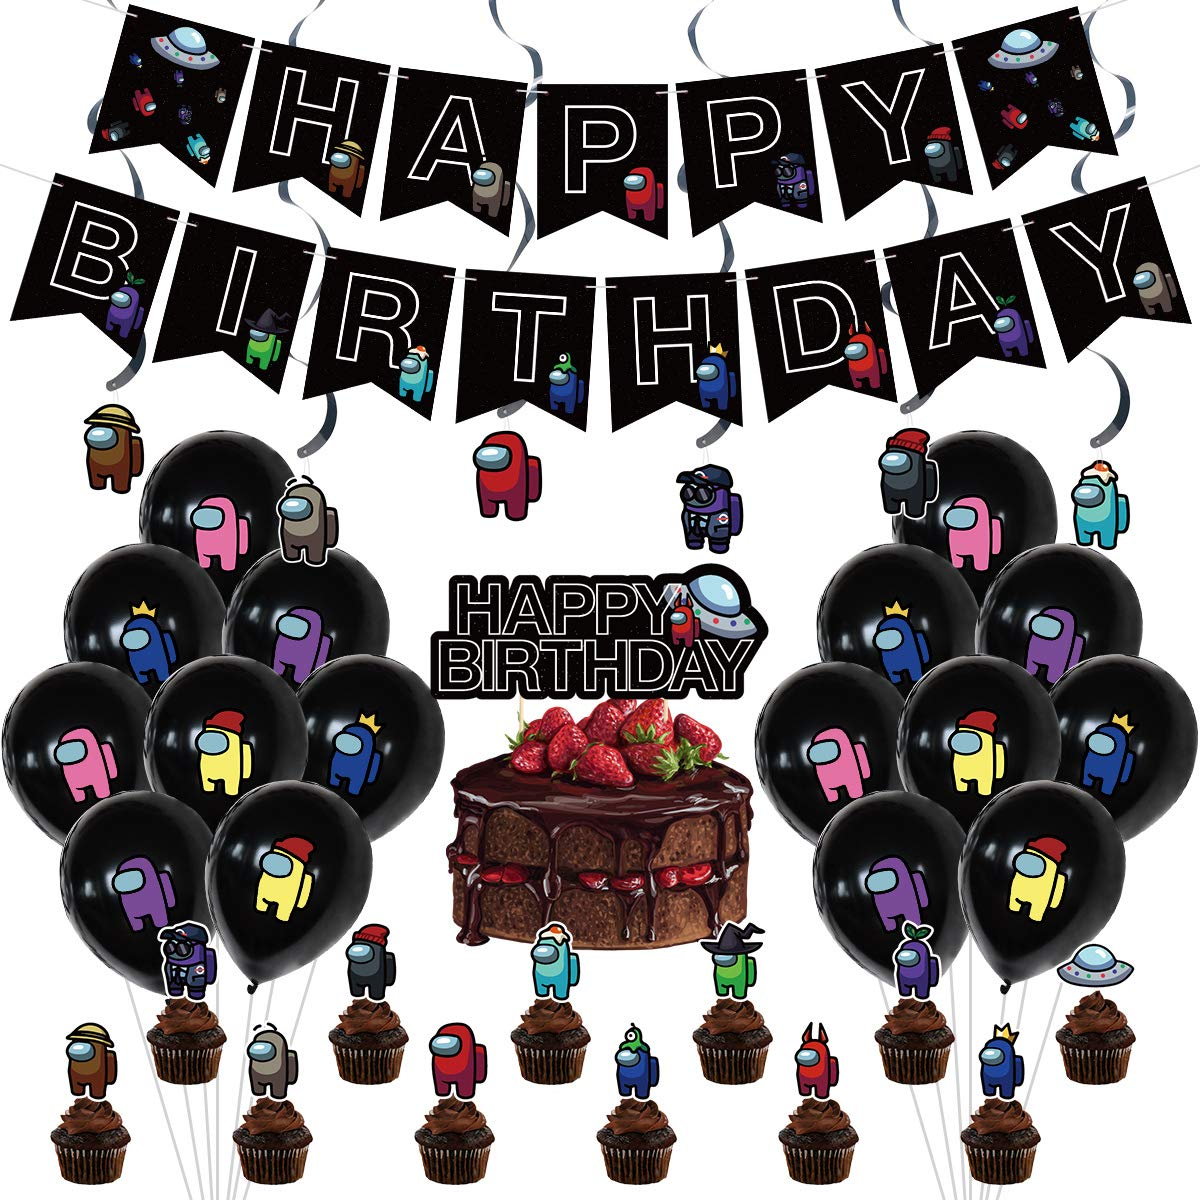 Among Birthday Party Decorations Supply Set for Kids with Happy Birthday Banner Garland, Cake Topper, Cupcake Toppers, Balloons for Party Decorations